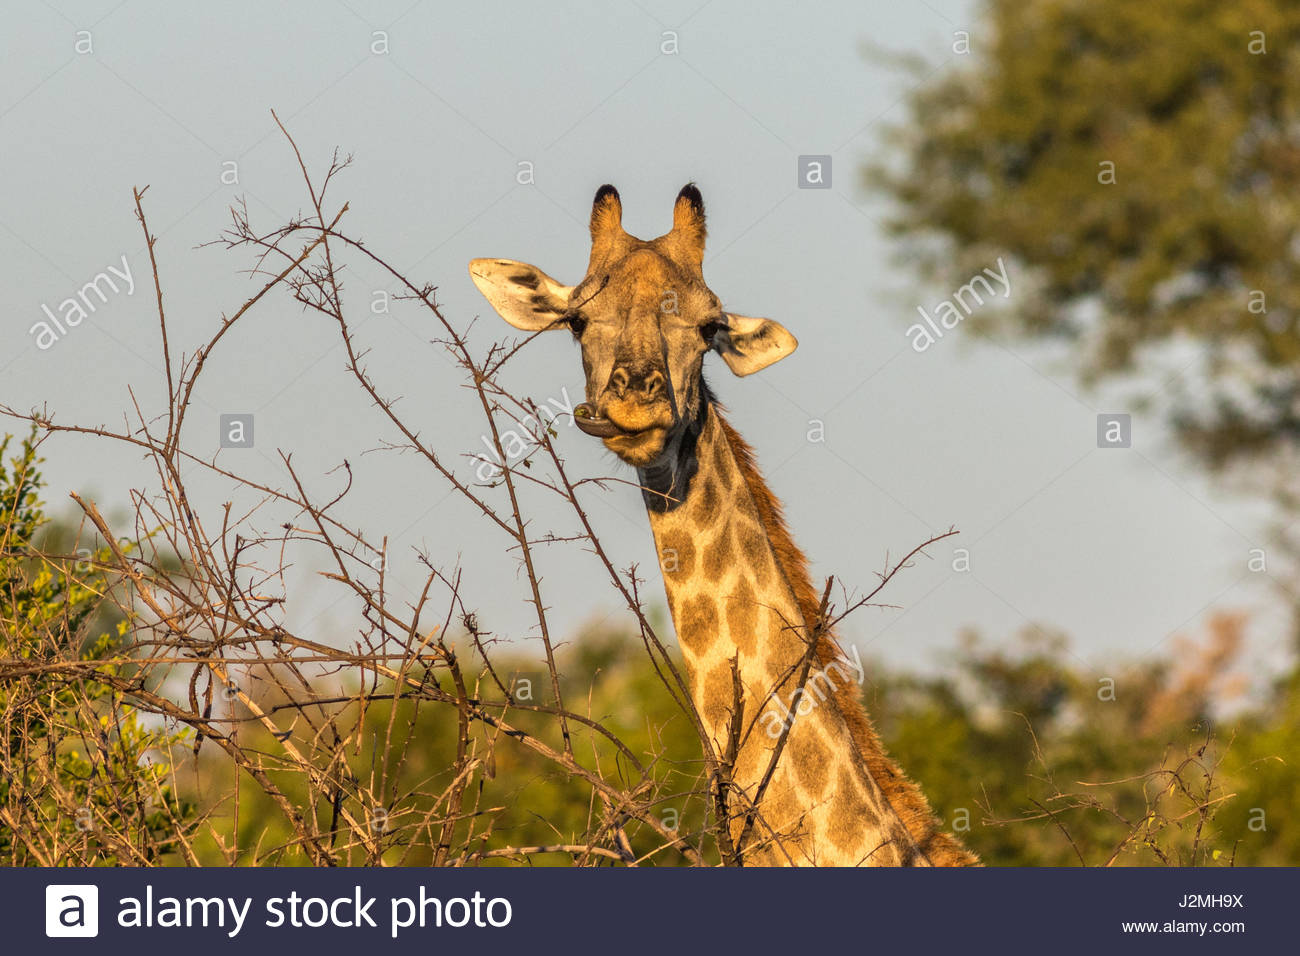 A close-up of a Giraffe head as it wraps its tongue around the leaves of a thornbush. - Stock Image